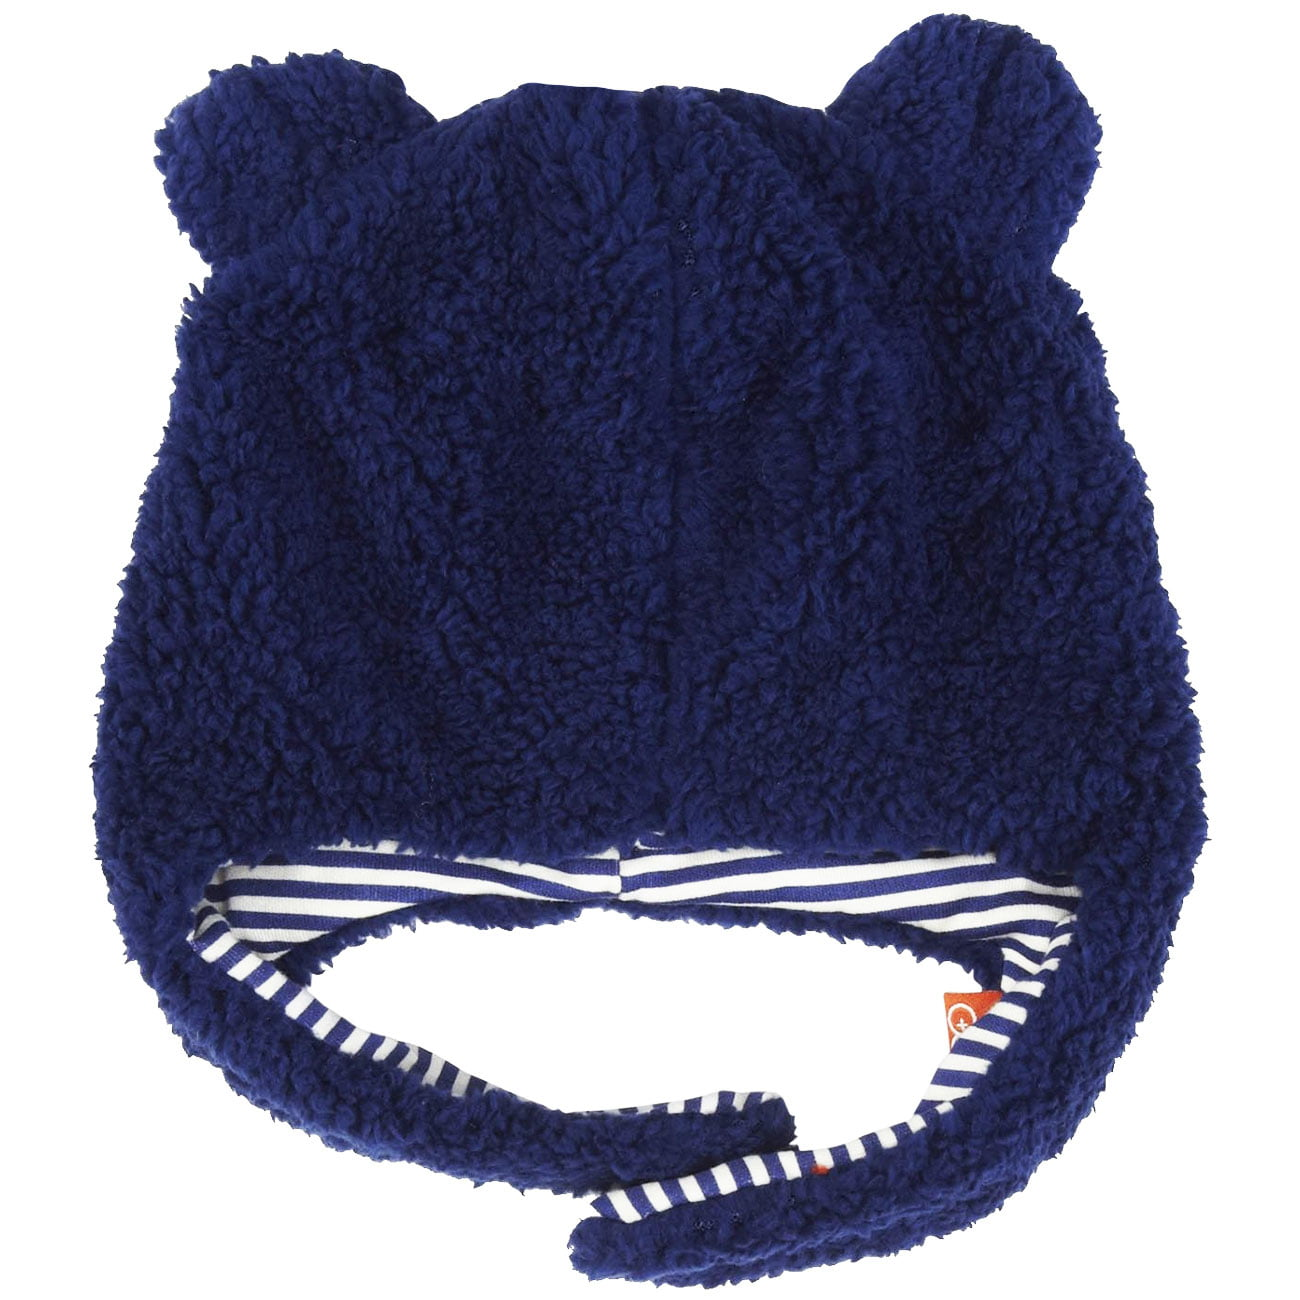 6177825cf Magnificent Baby Boys Solid Warm Fleece Winter Hat with Cotton Lining Easy  Magnet Close Chin Strap and Ear Flap 12-18 Months Navy Blue (Pilot Hat)